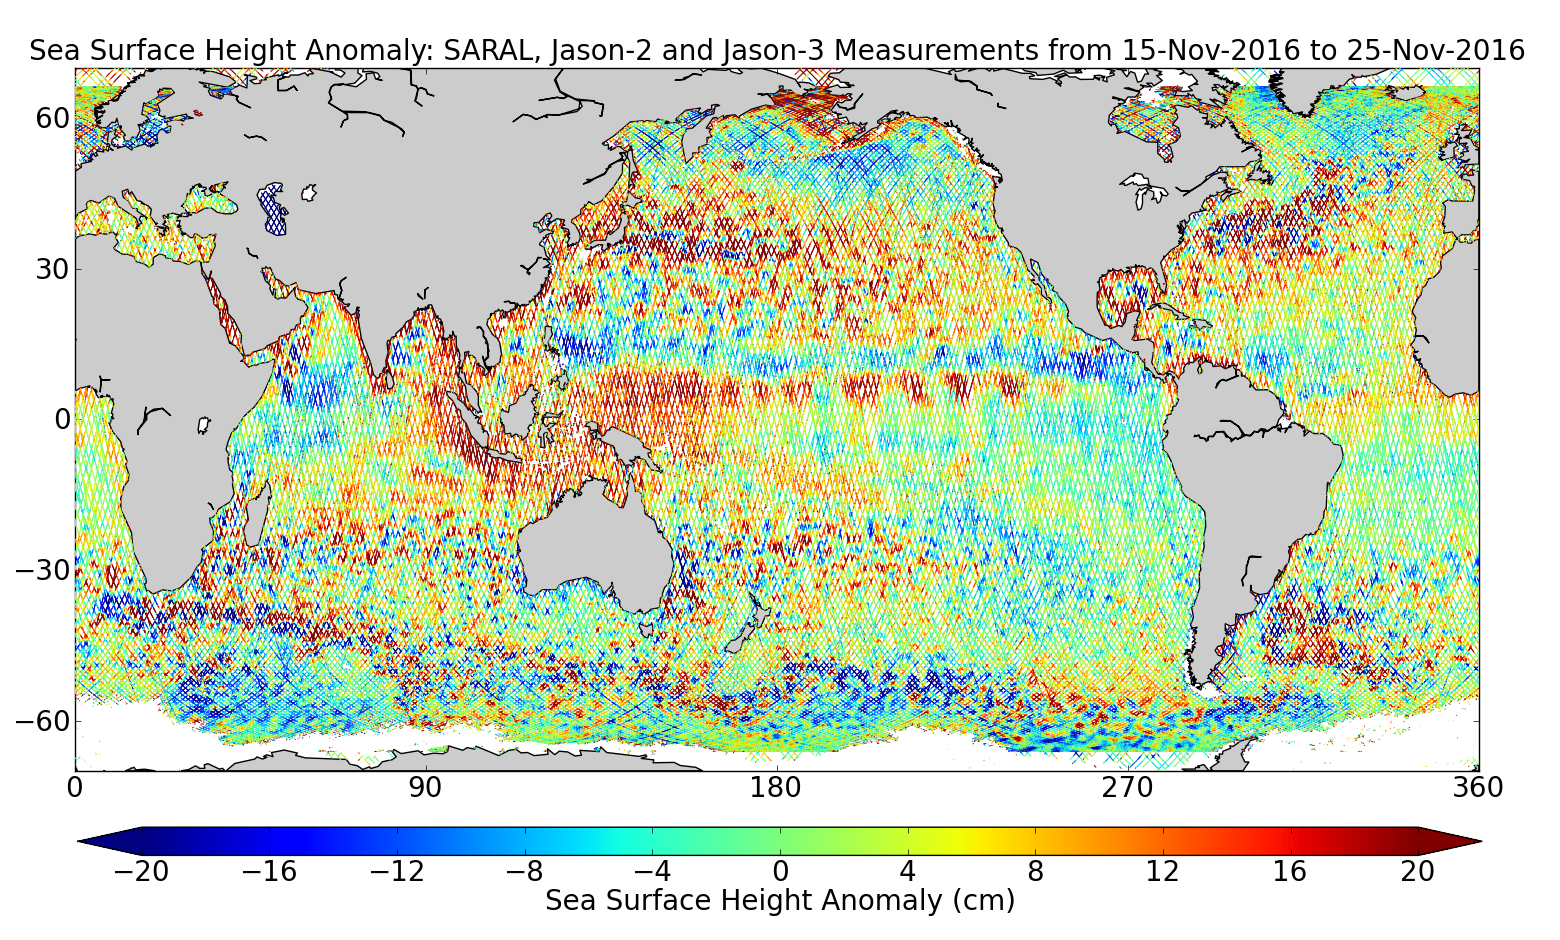 Sea Surface Height Anomaly: SARAL, Jason-2 and Jason-3 Measurements from 15-Nov-2016 to 25-Nov-2016